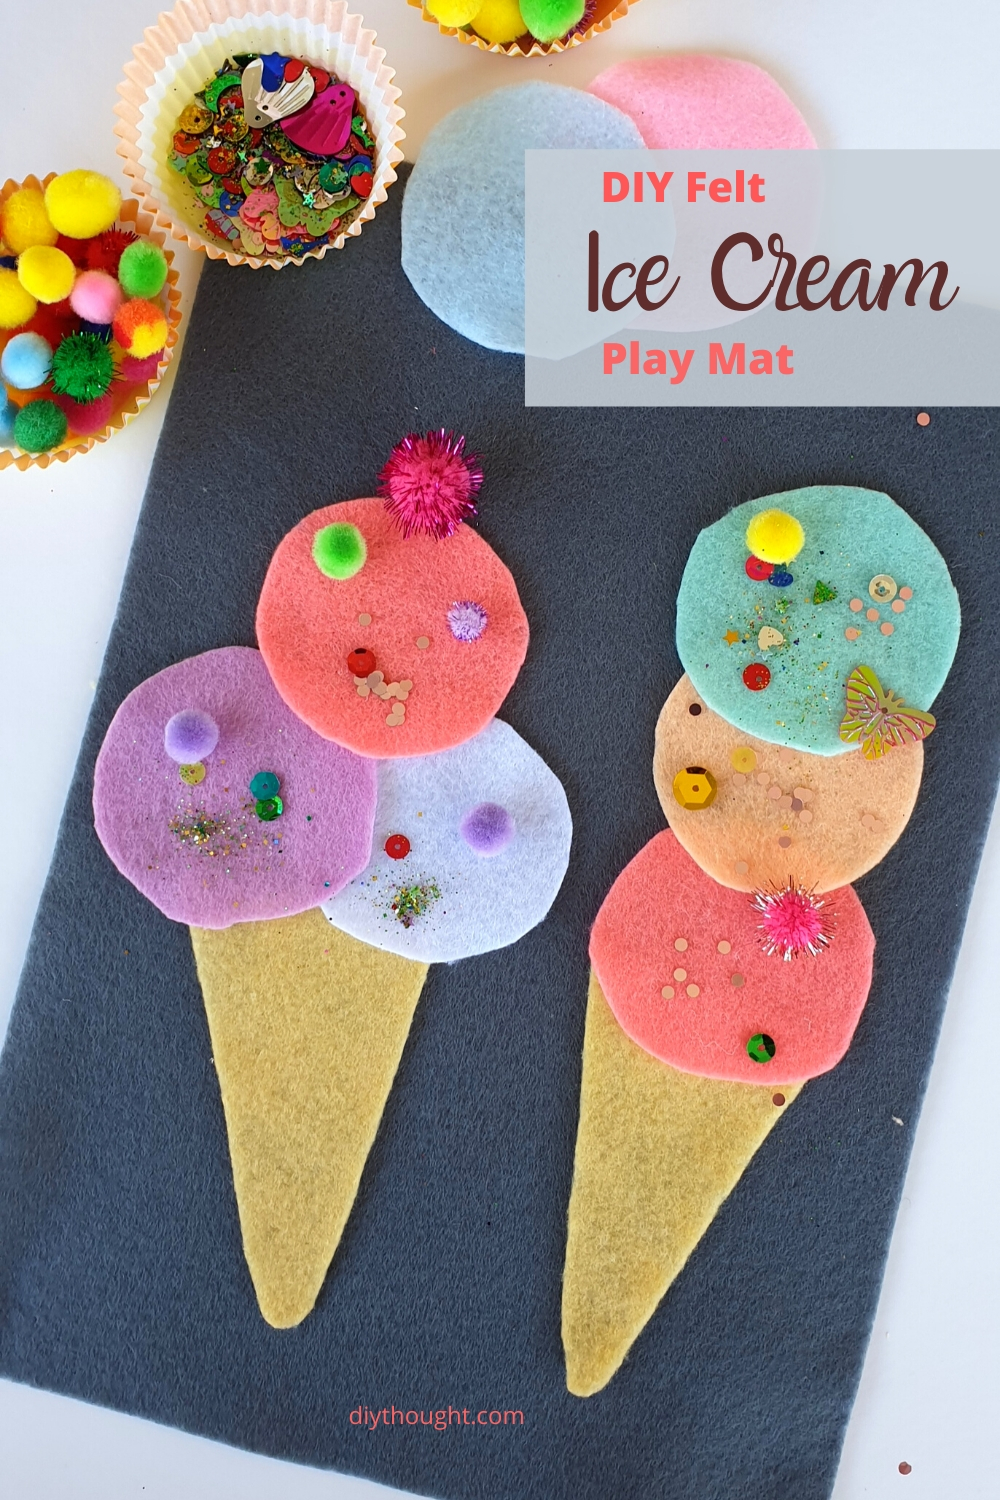 Felt ice cream play mat DIY